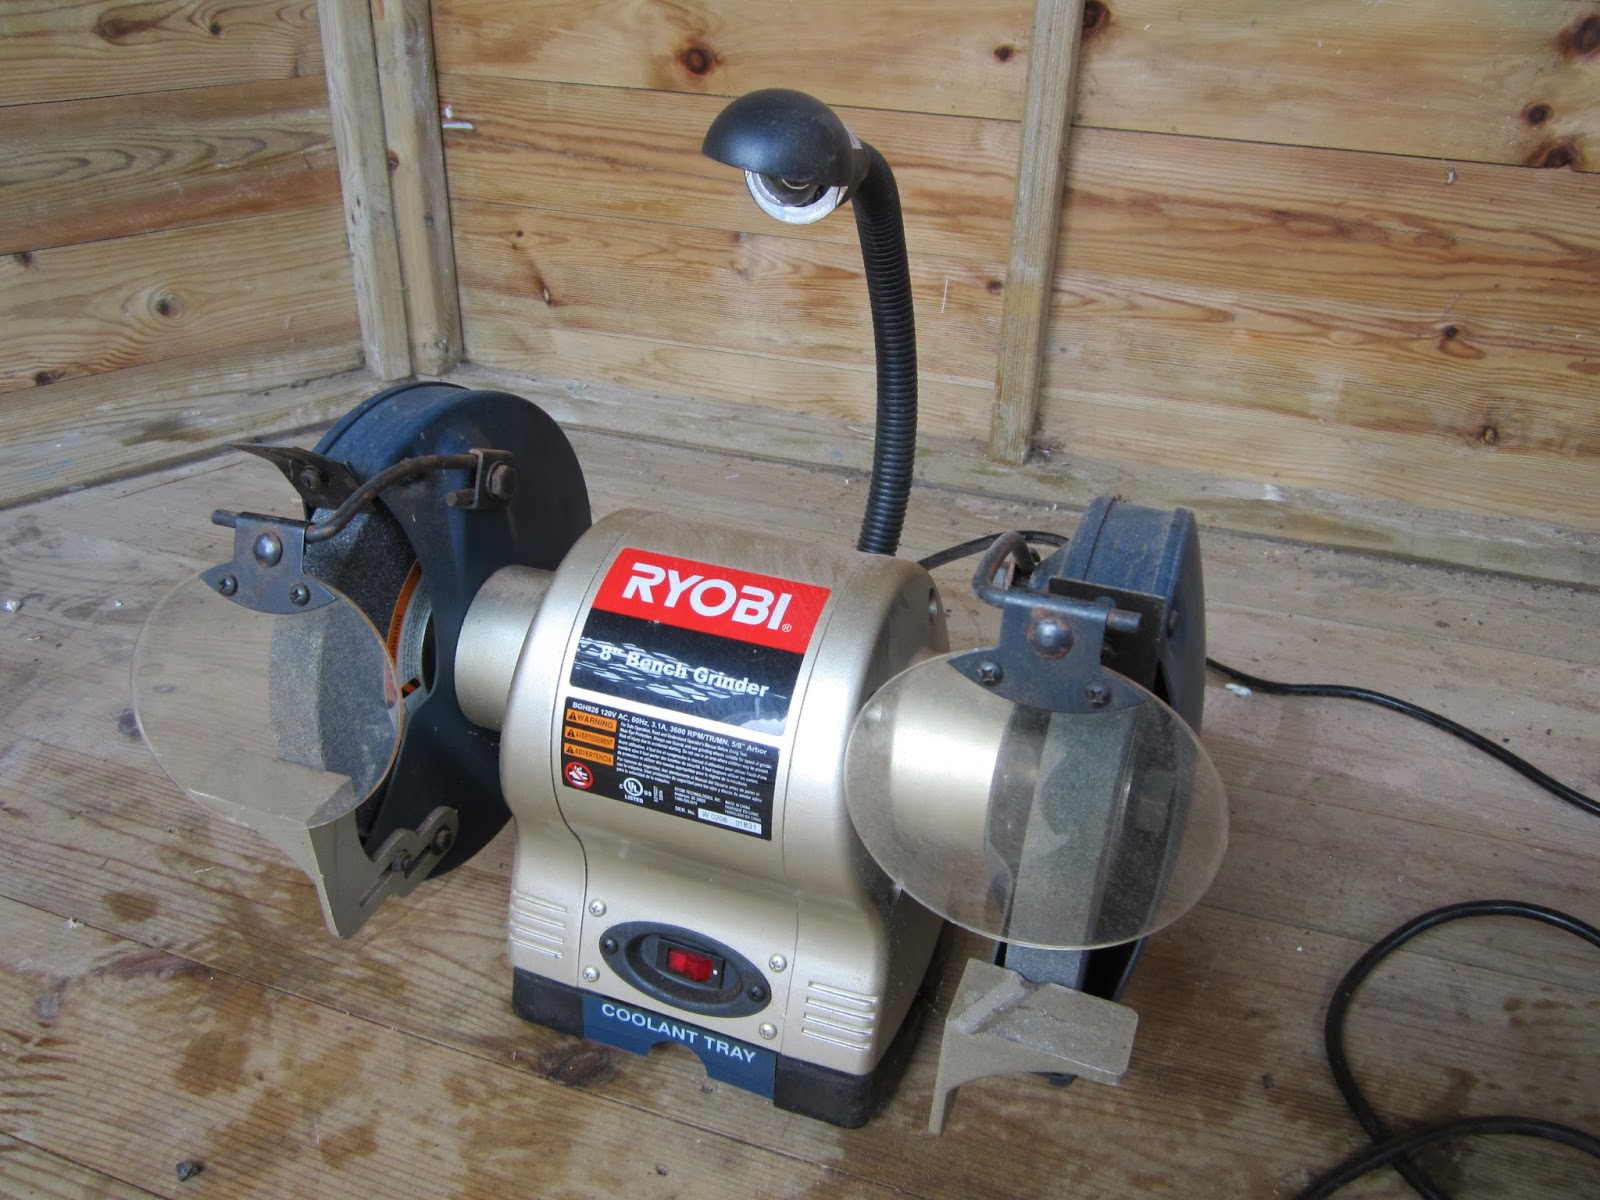 120v Equipment In The Uk Ryobi Bgh826 8 Bench Grinder